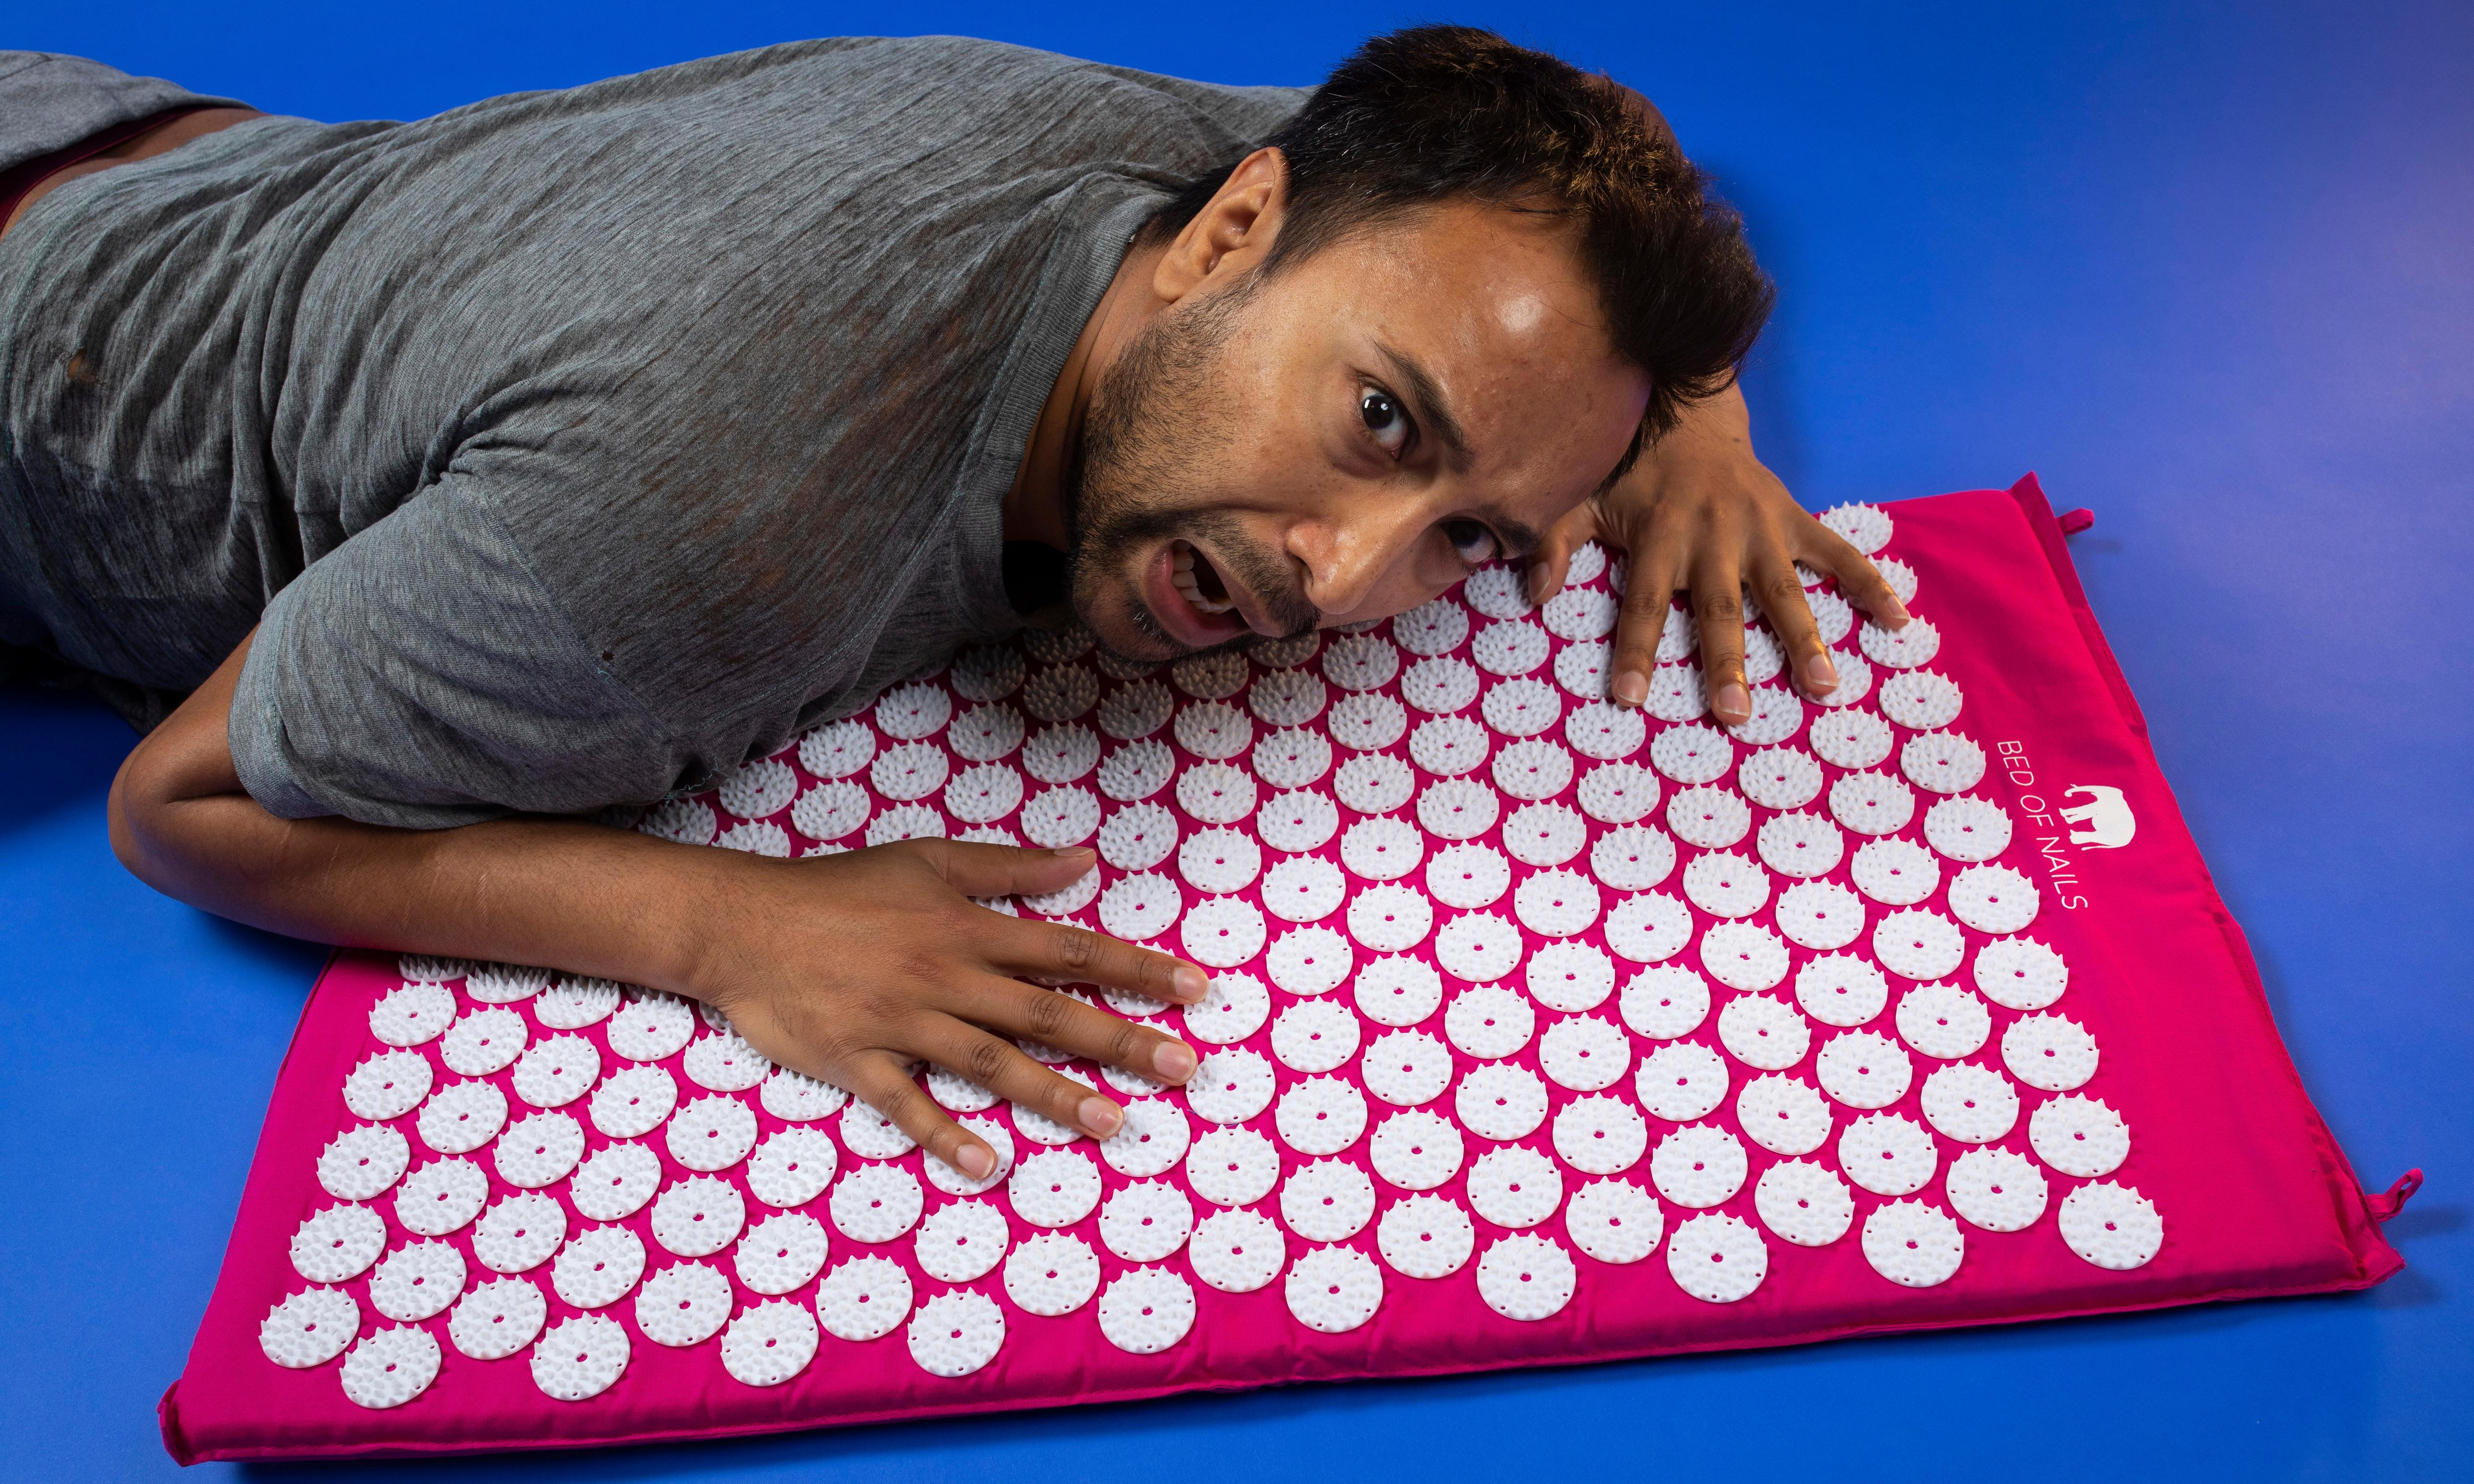 Can a bed of nails really relieve stress and insomnia - or just make me squeal?